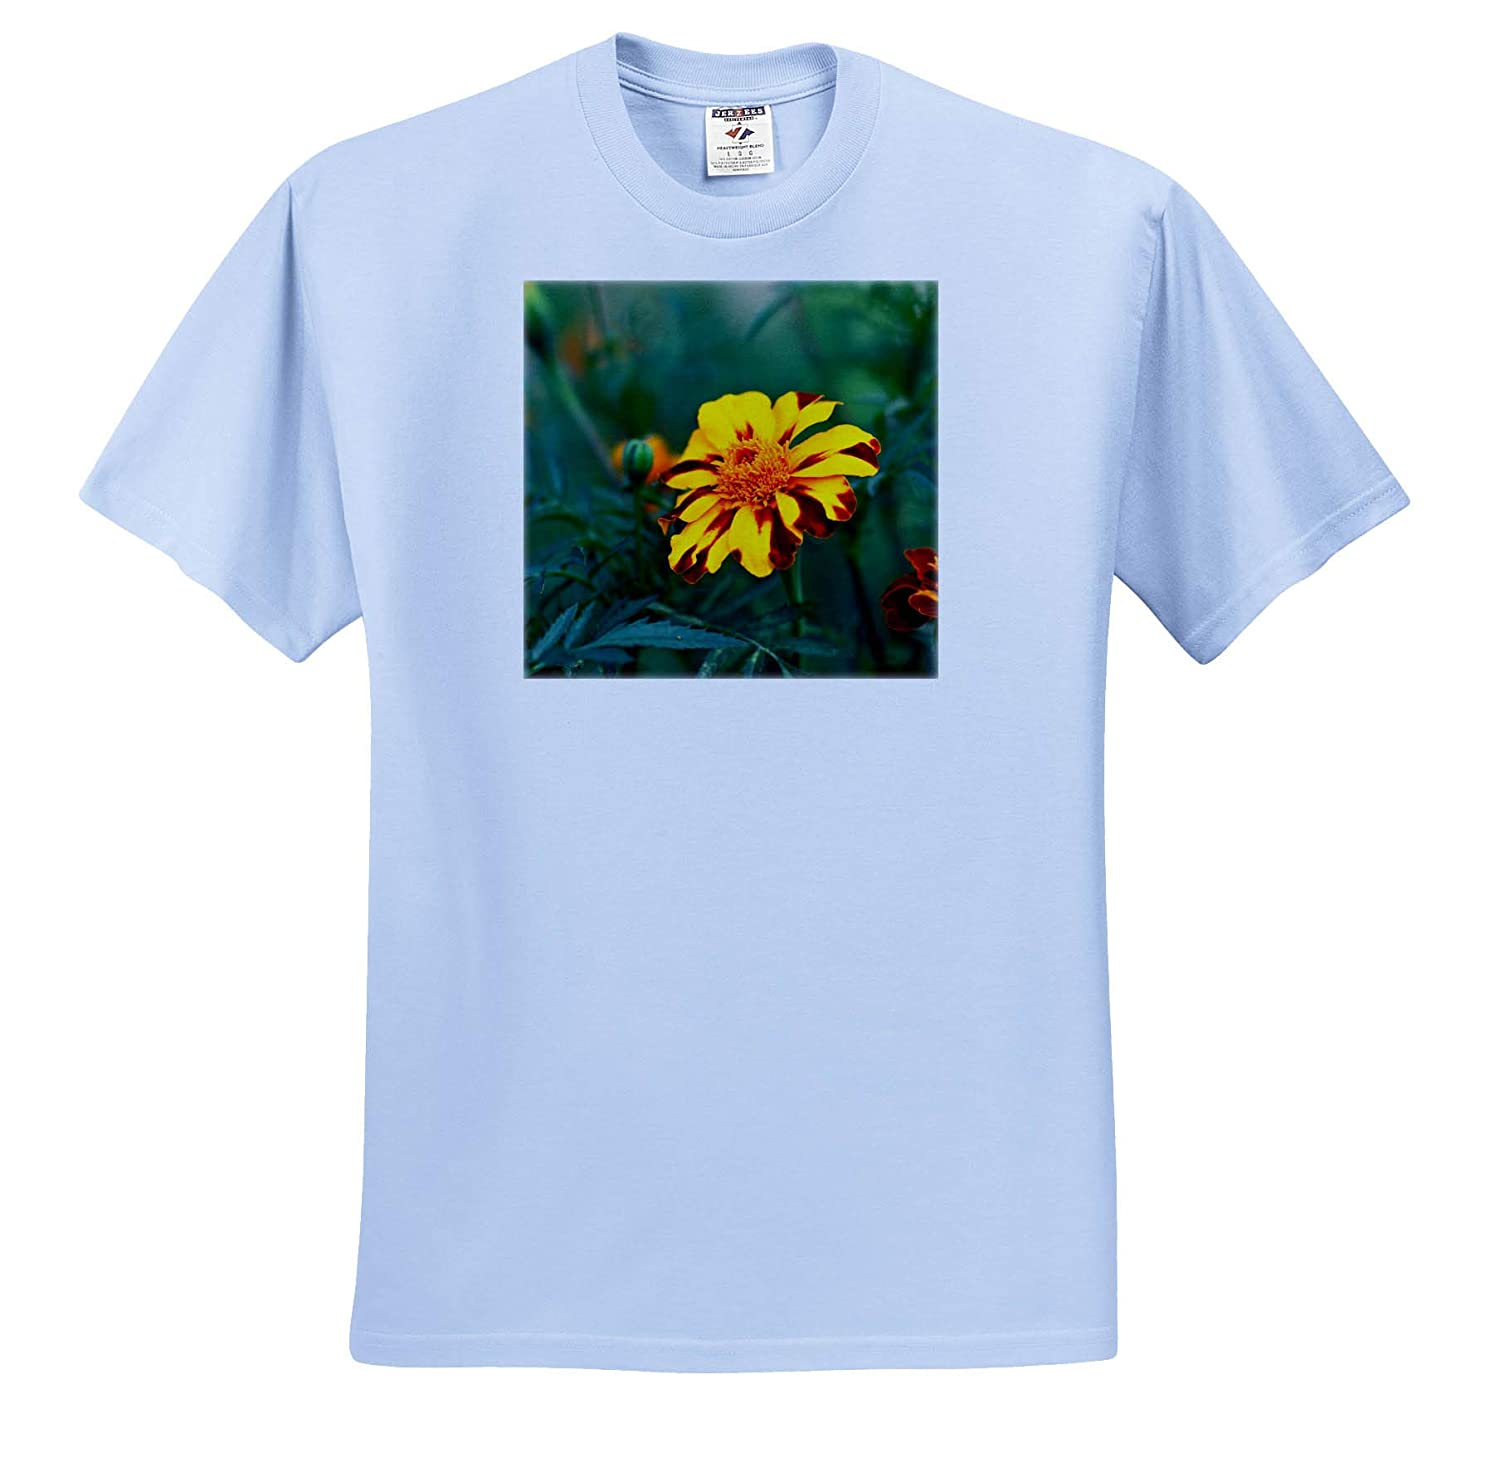 T-Shirts Yellow Flowers Marigold Summer Garden 3dRose Alexis Photography red Marigold Flower amidst The Green Leaves